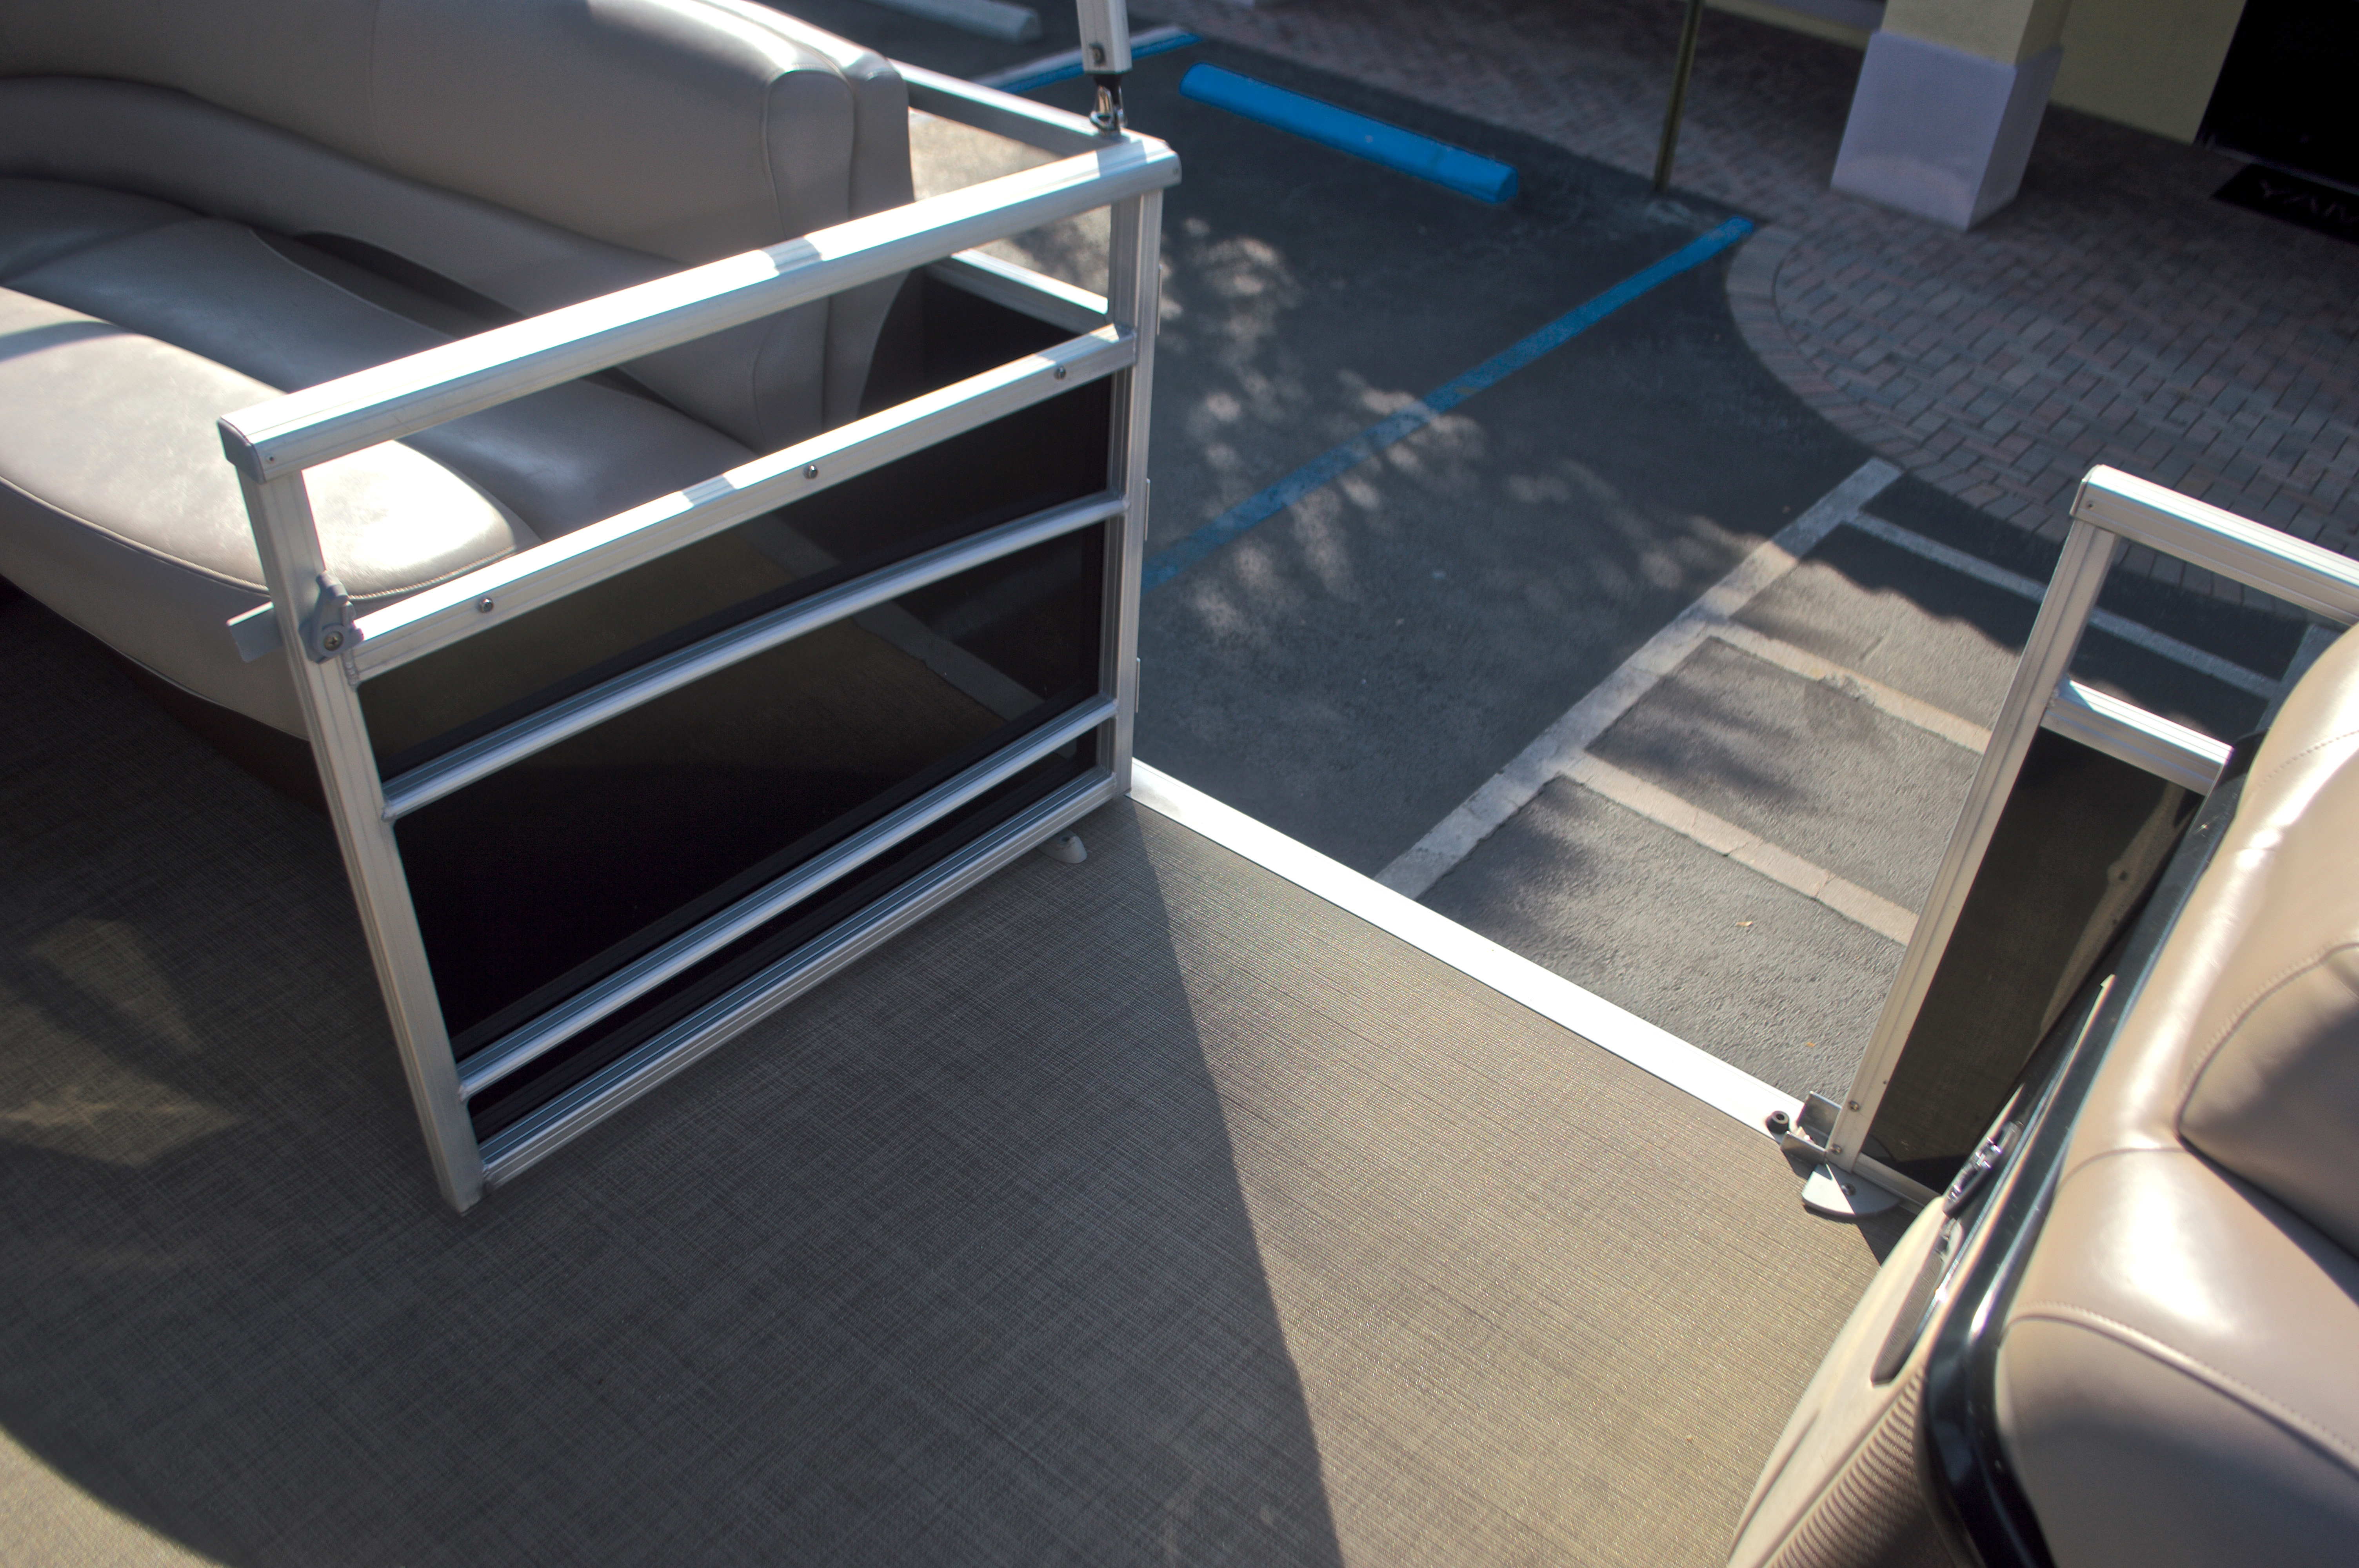 Thumbnail 28 for Used 2014 Regency Party Barge 254 XP3 boat for sale in West Palm Beach, FL